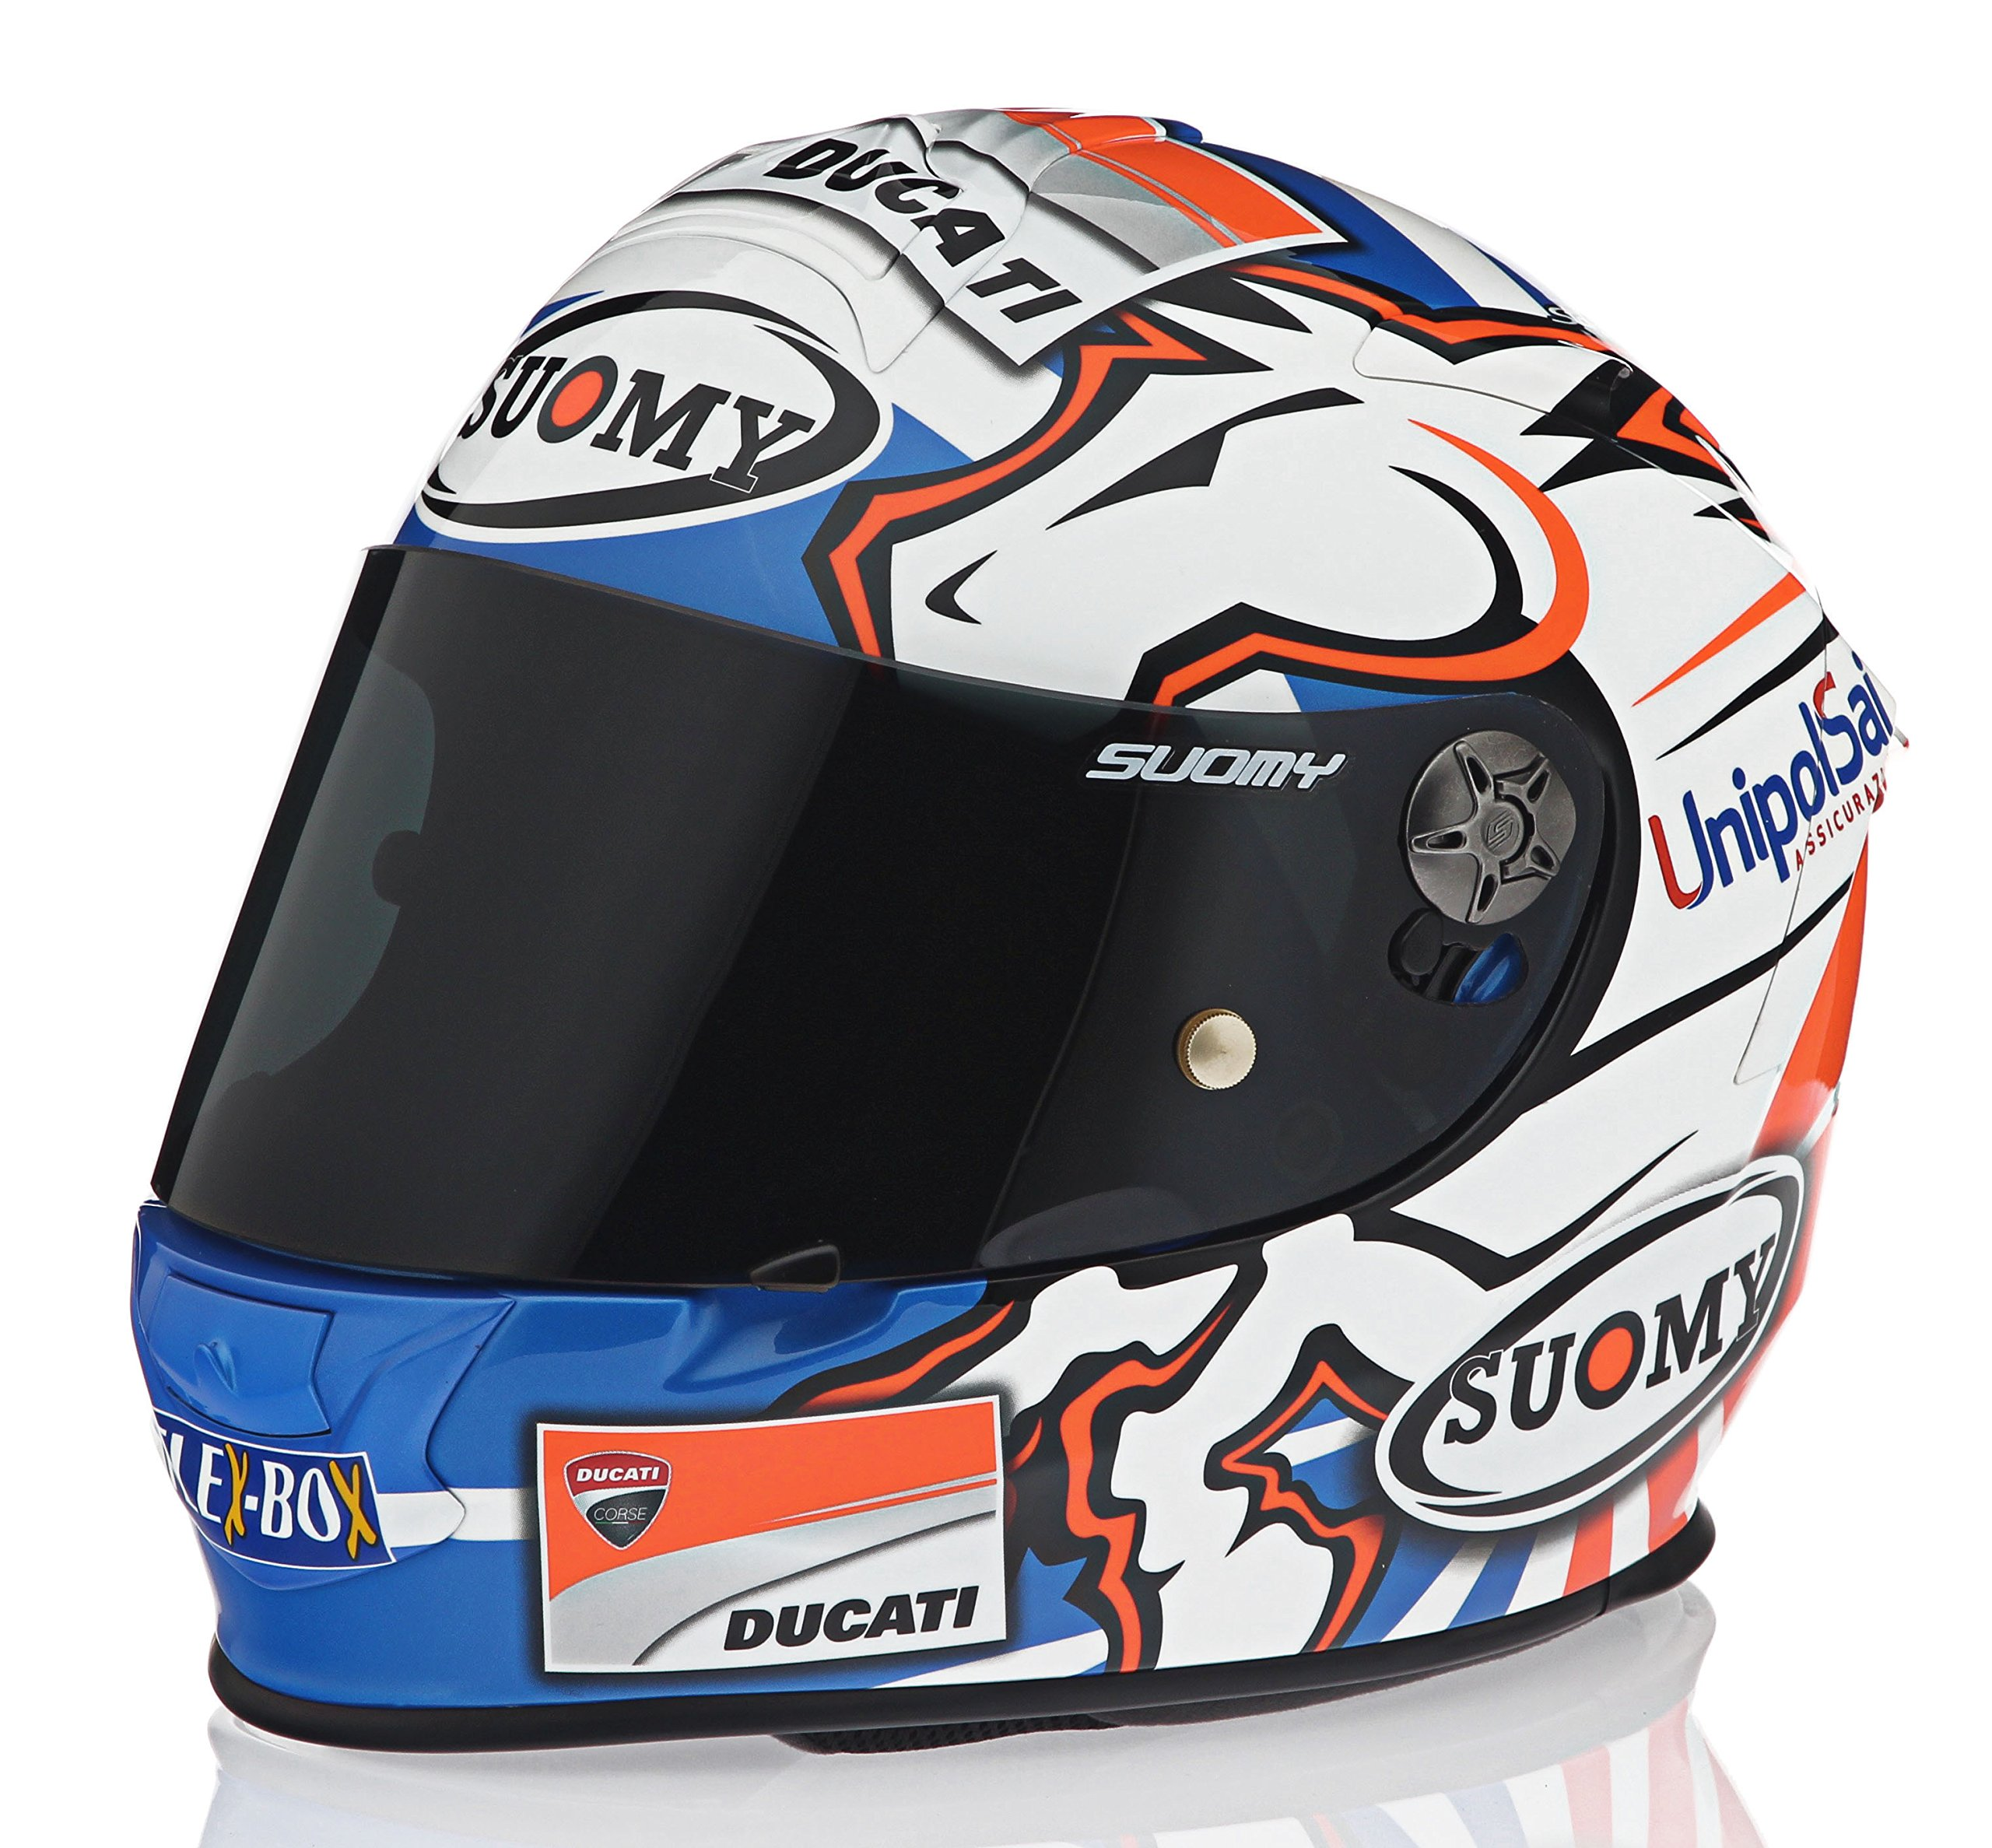 Suomy KTSR0033-MD SR Sport Helmet- DOVI GP DUC Medium by Suomy (Image #1)